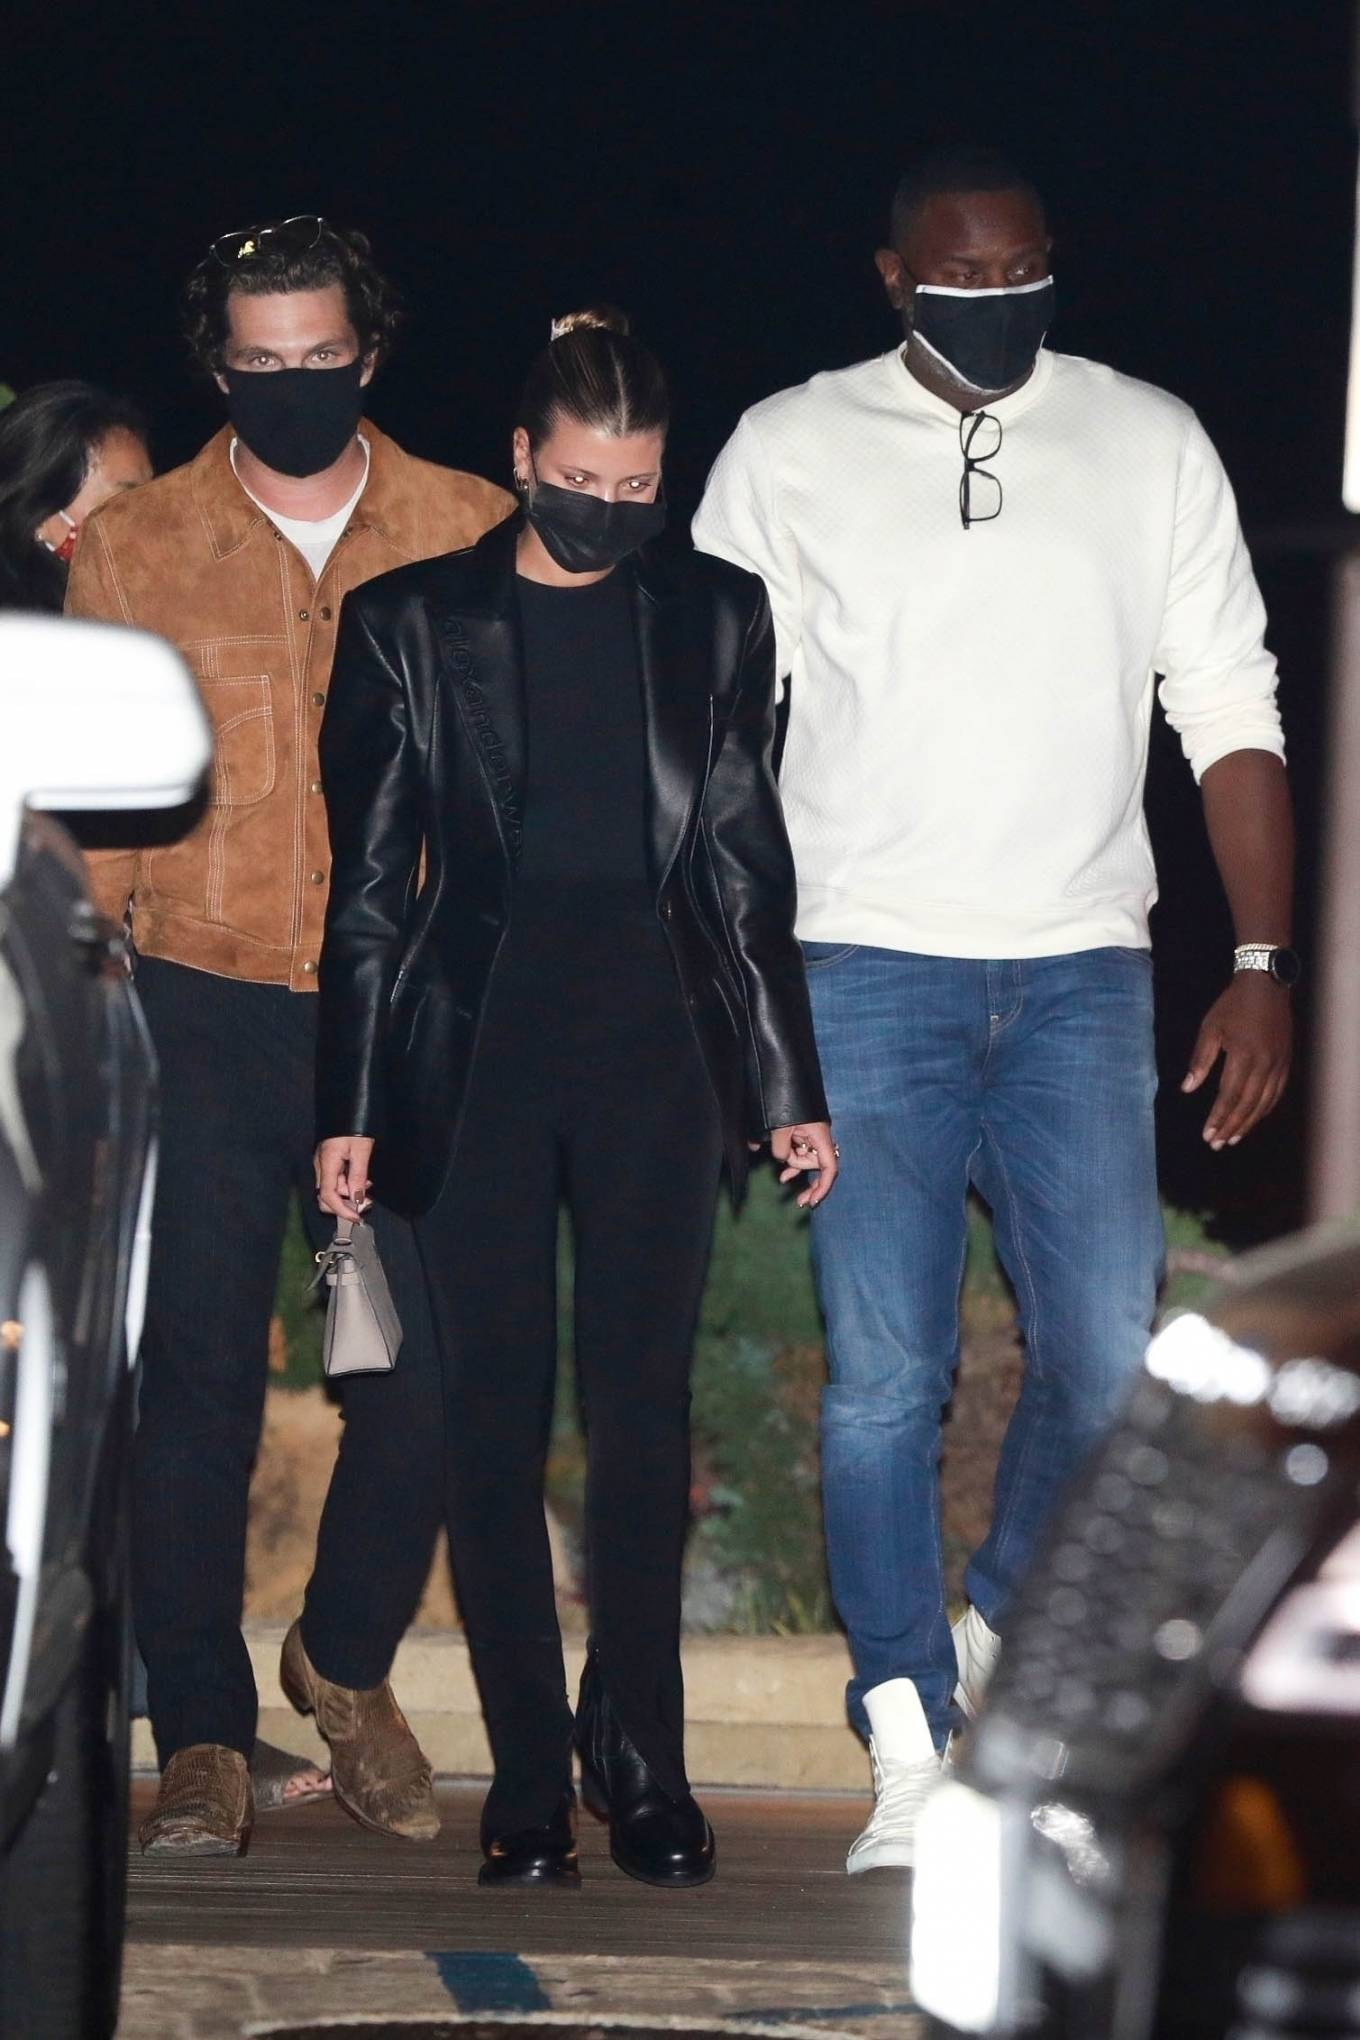 Sofia Richie - Leaving dinner at Nobu in Malibu